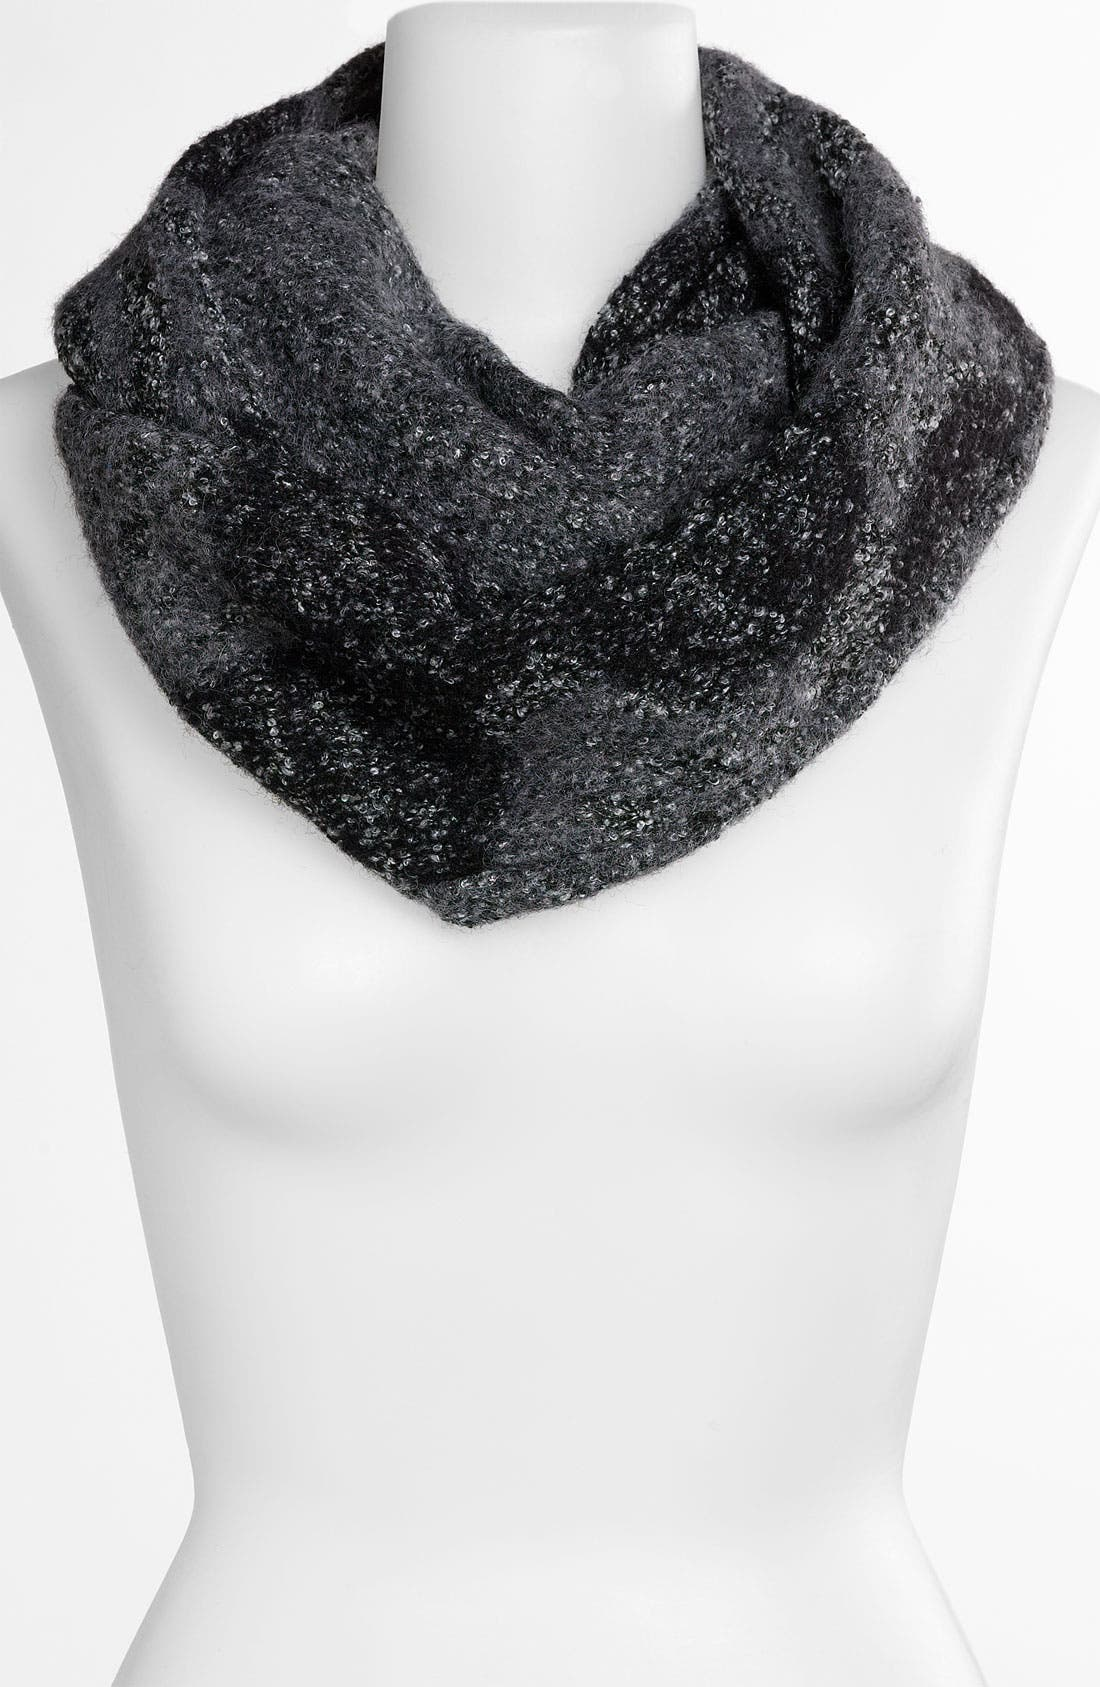 NORDSTROM,                             Infinity Scarf,                             Main thumbnail 1, color,                             001